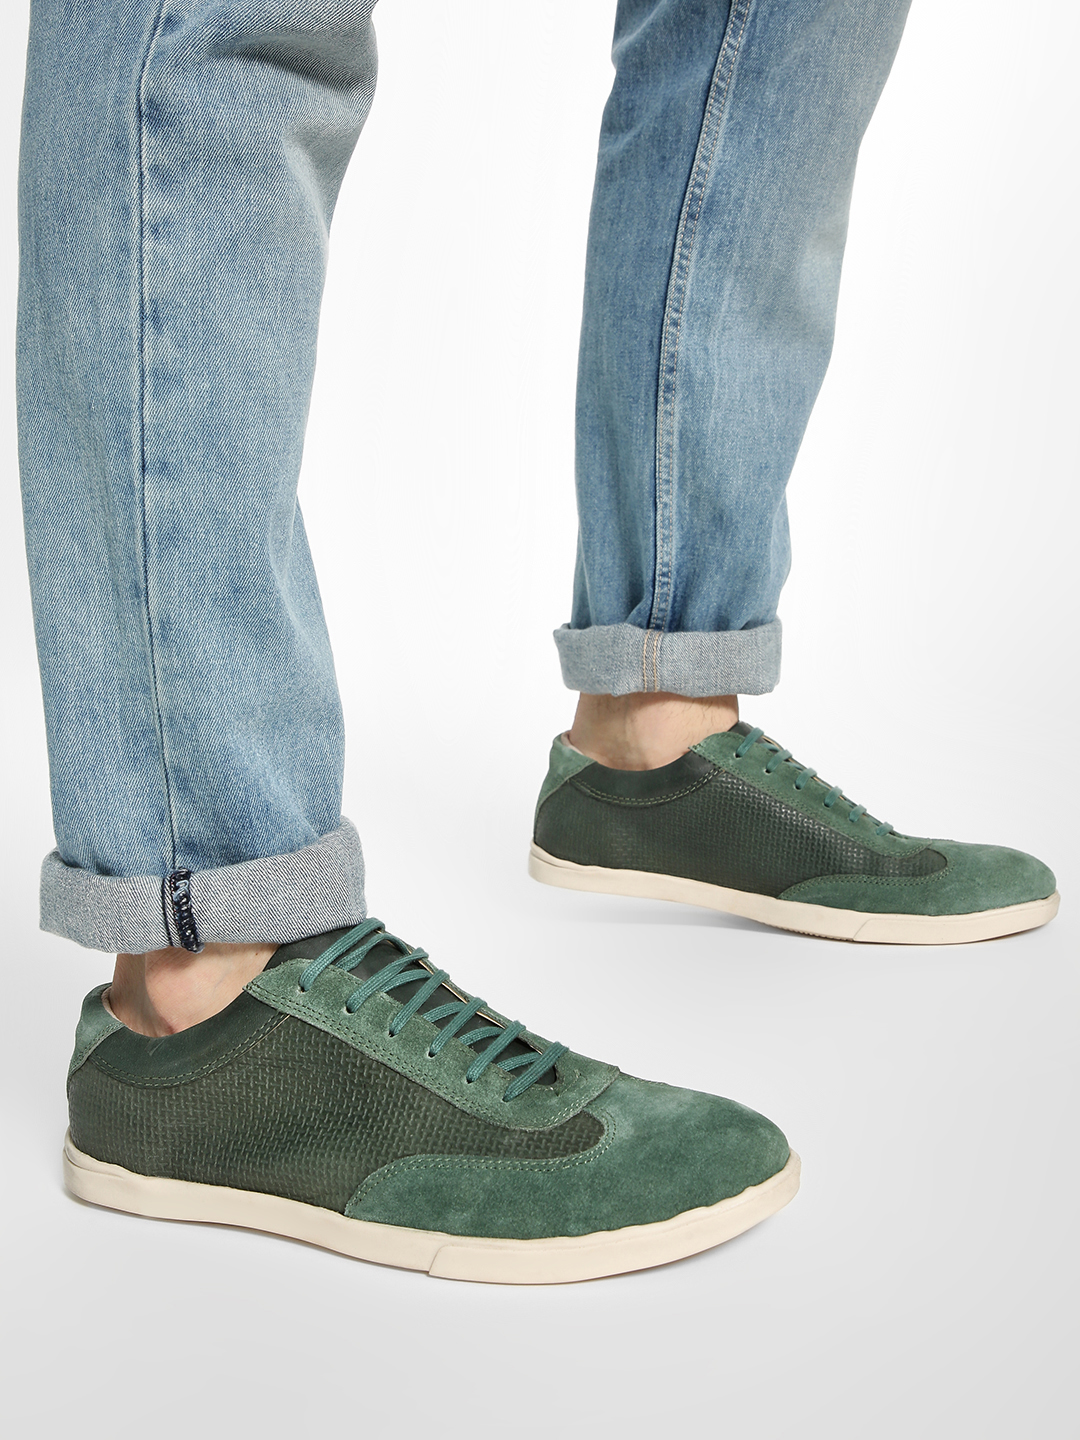 YOHO Green Suede Panel Leather Sneakers 1